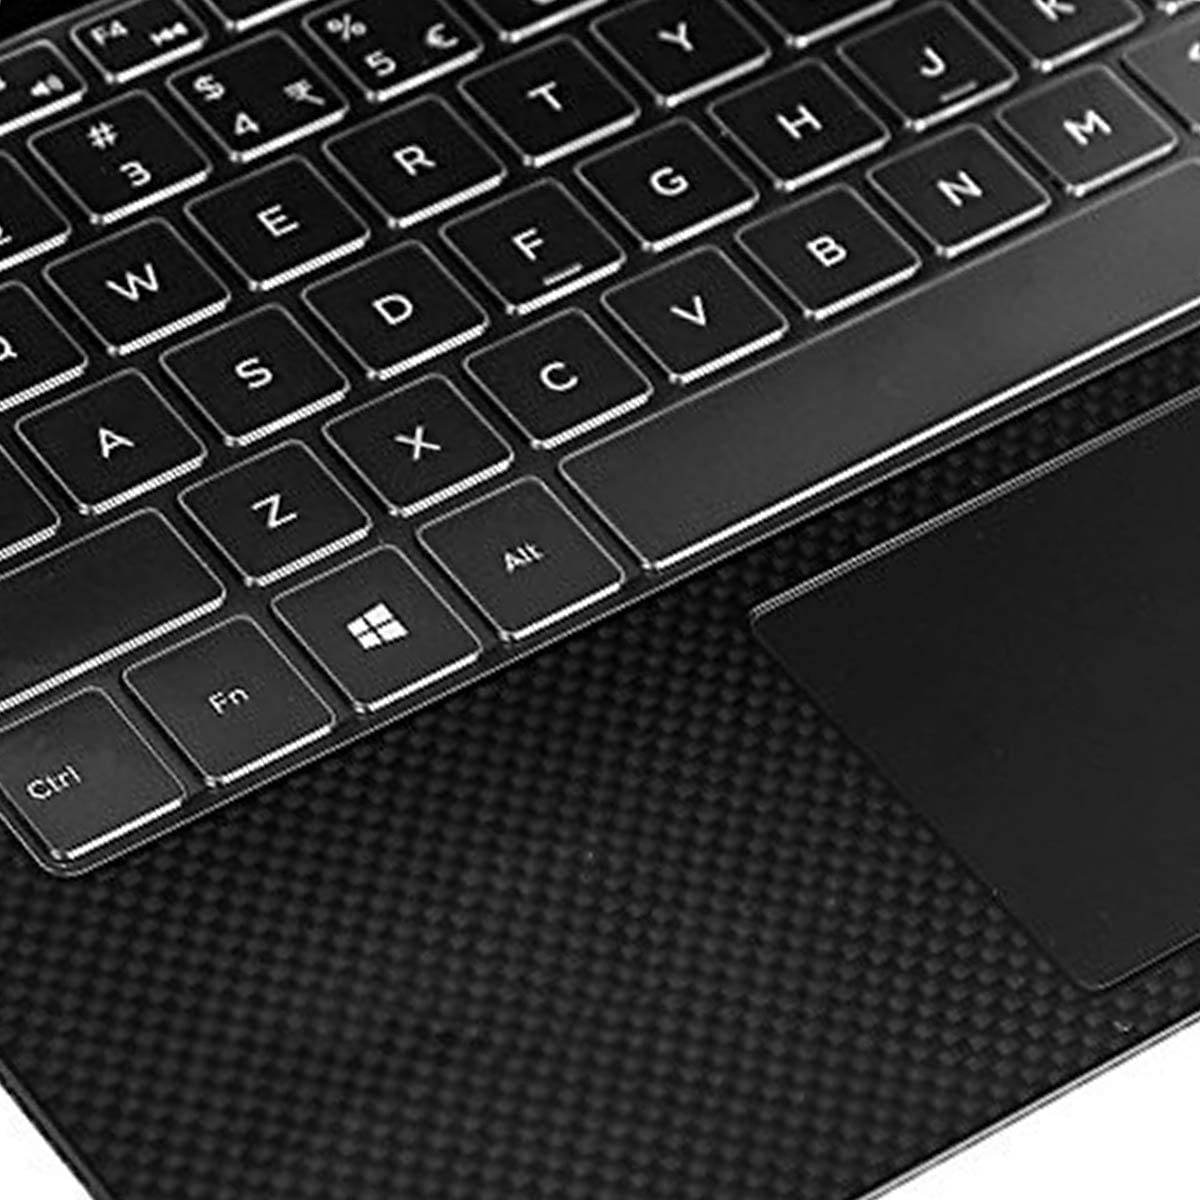 Dell XPS 15 Keyboard Cover Protector Skin DELL XPS 15-9570 15-9550 15-9560 15.6 Laptop Clear NOT fit DELL XPS 15 9575 DELL Precision 15-5510 M5510 US Layout